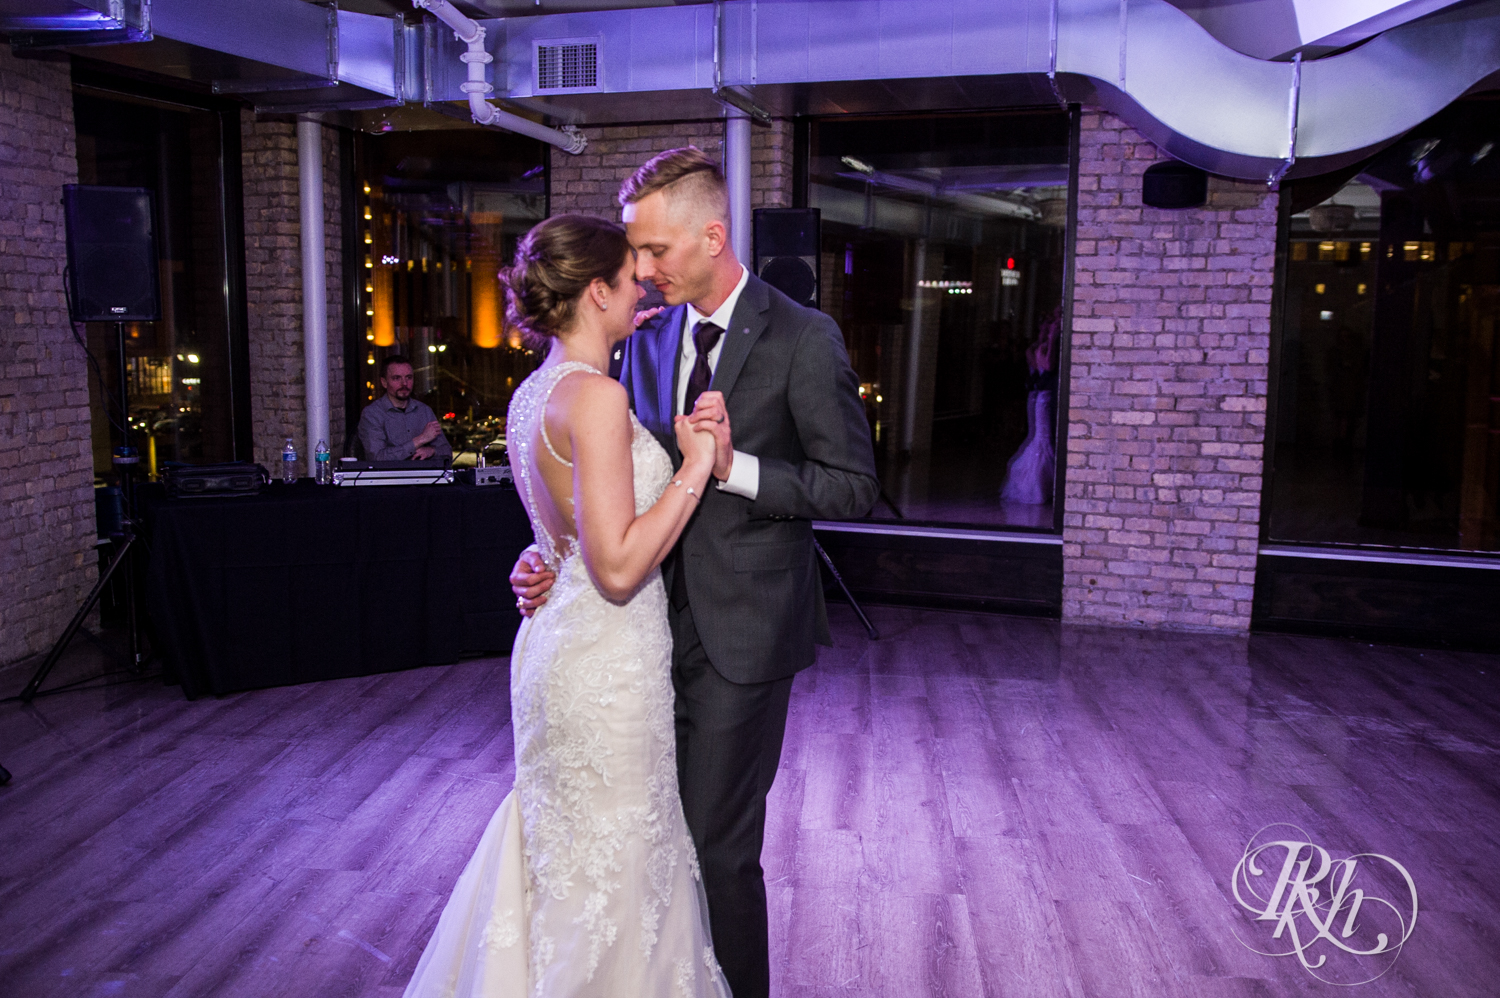 Jillian & Jared - Minnesota Wedding Photography - Lumber Exchange Event Center - RKH Images - Blog (75 of 87).jpg